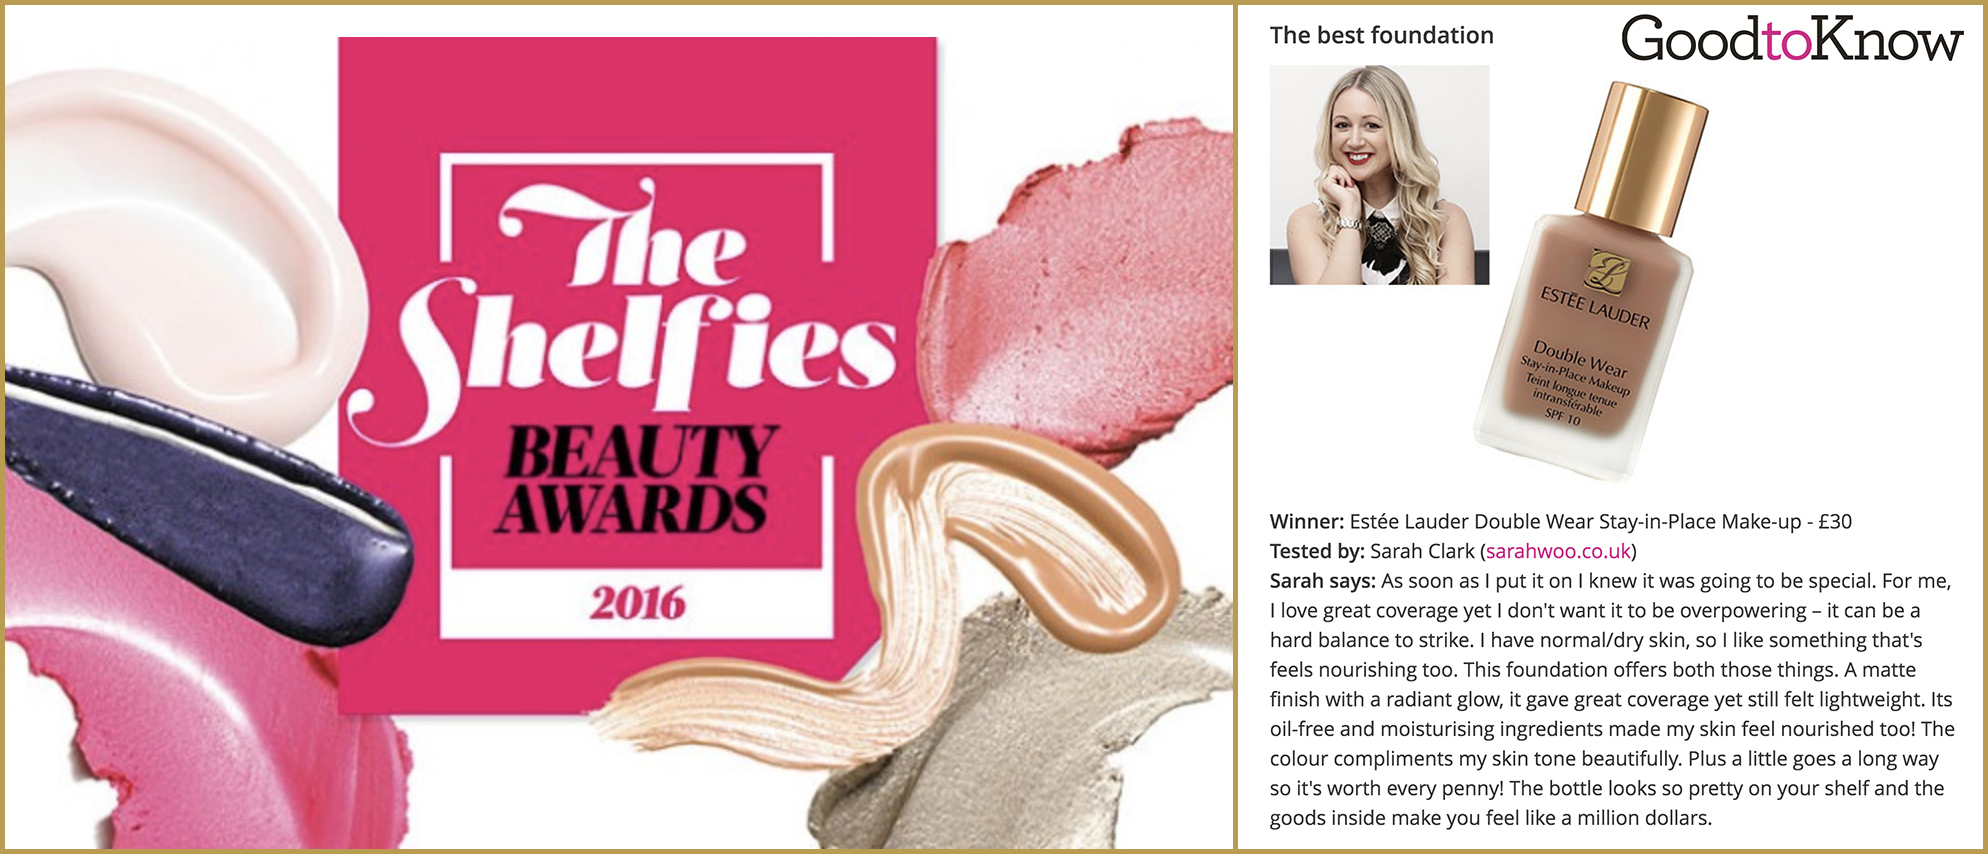 gtk-essentials-shelfie-beauty-awards